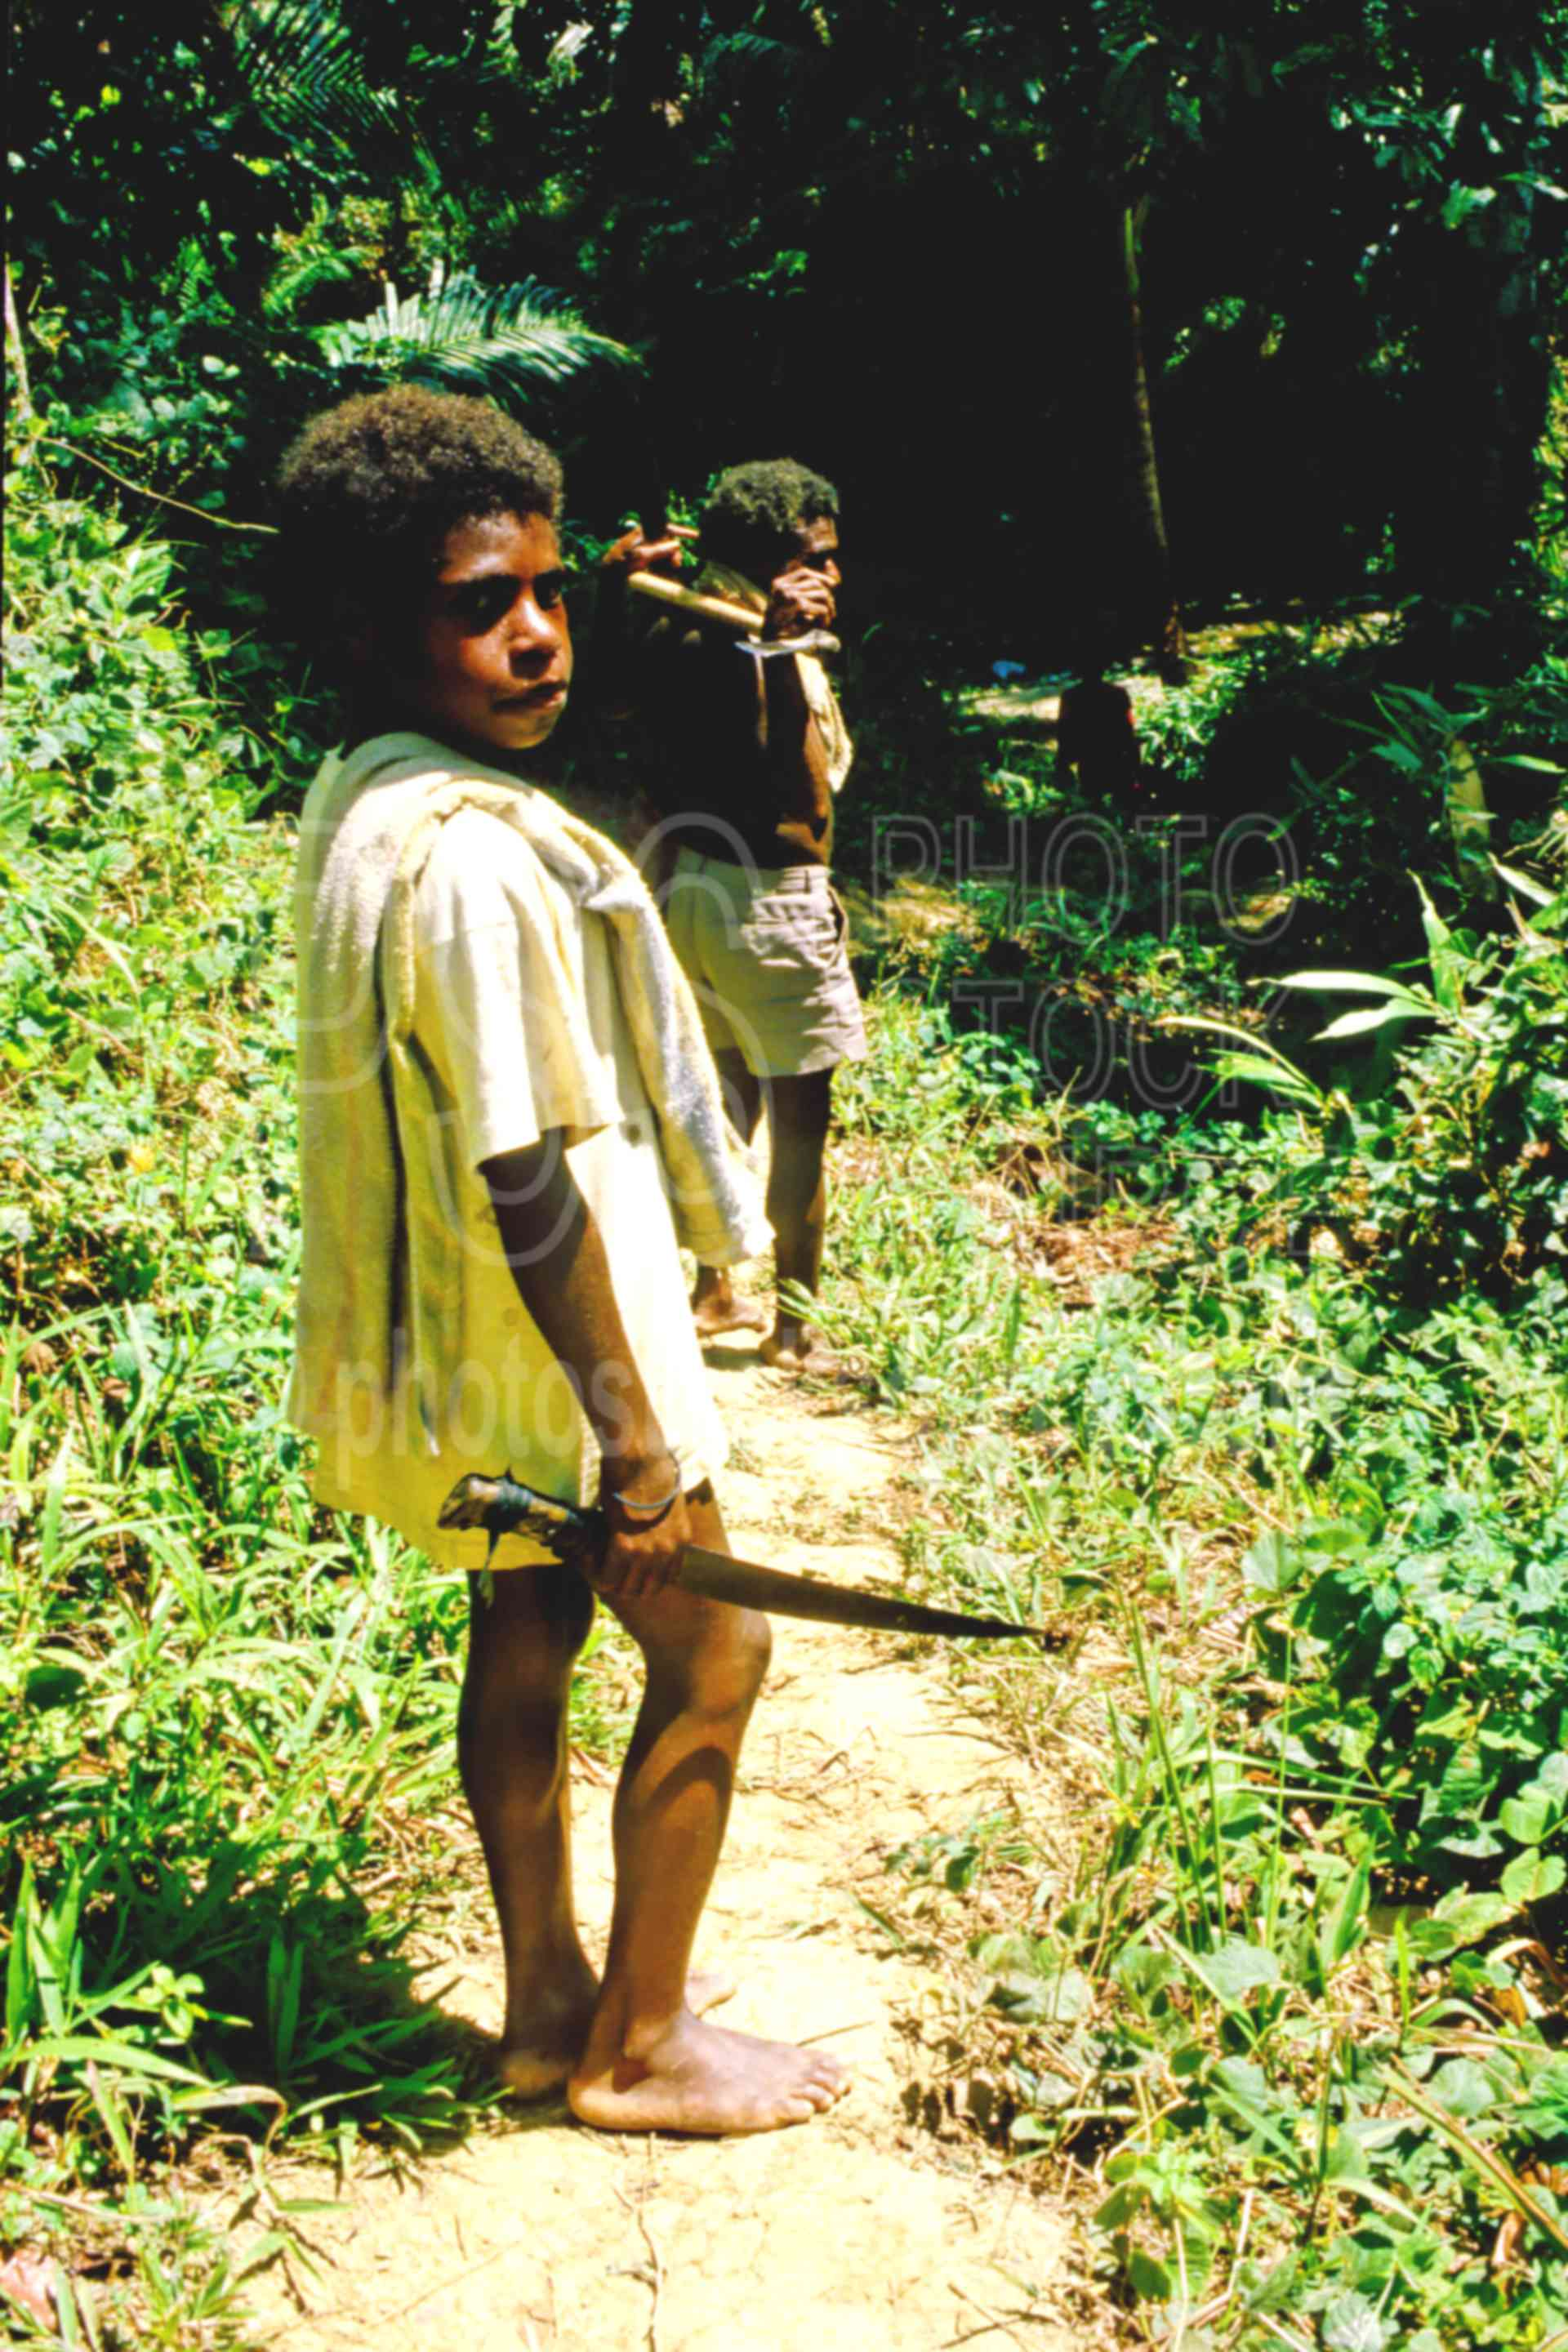 Boy with Machete,boys,bush,jungle,knife,machete,trail,children